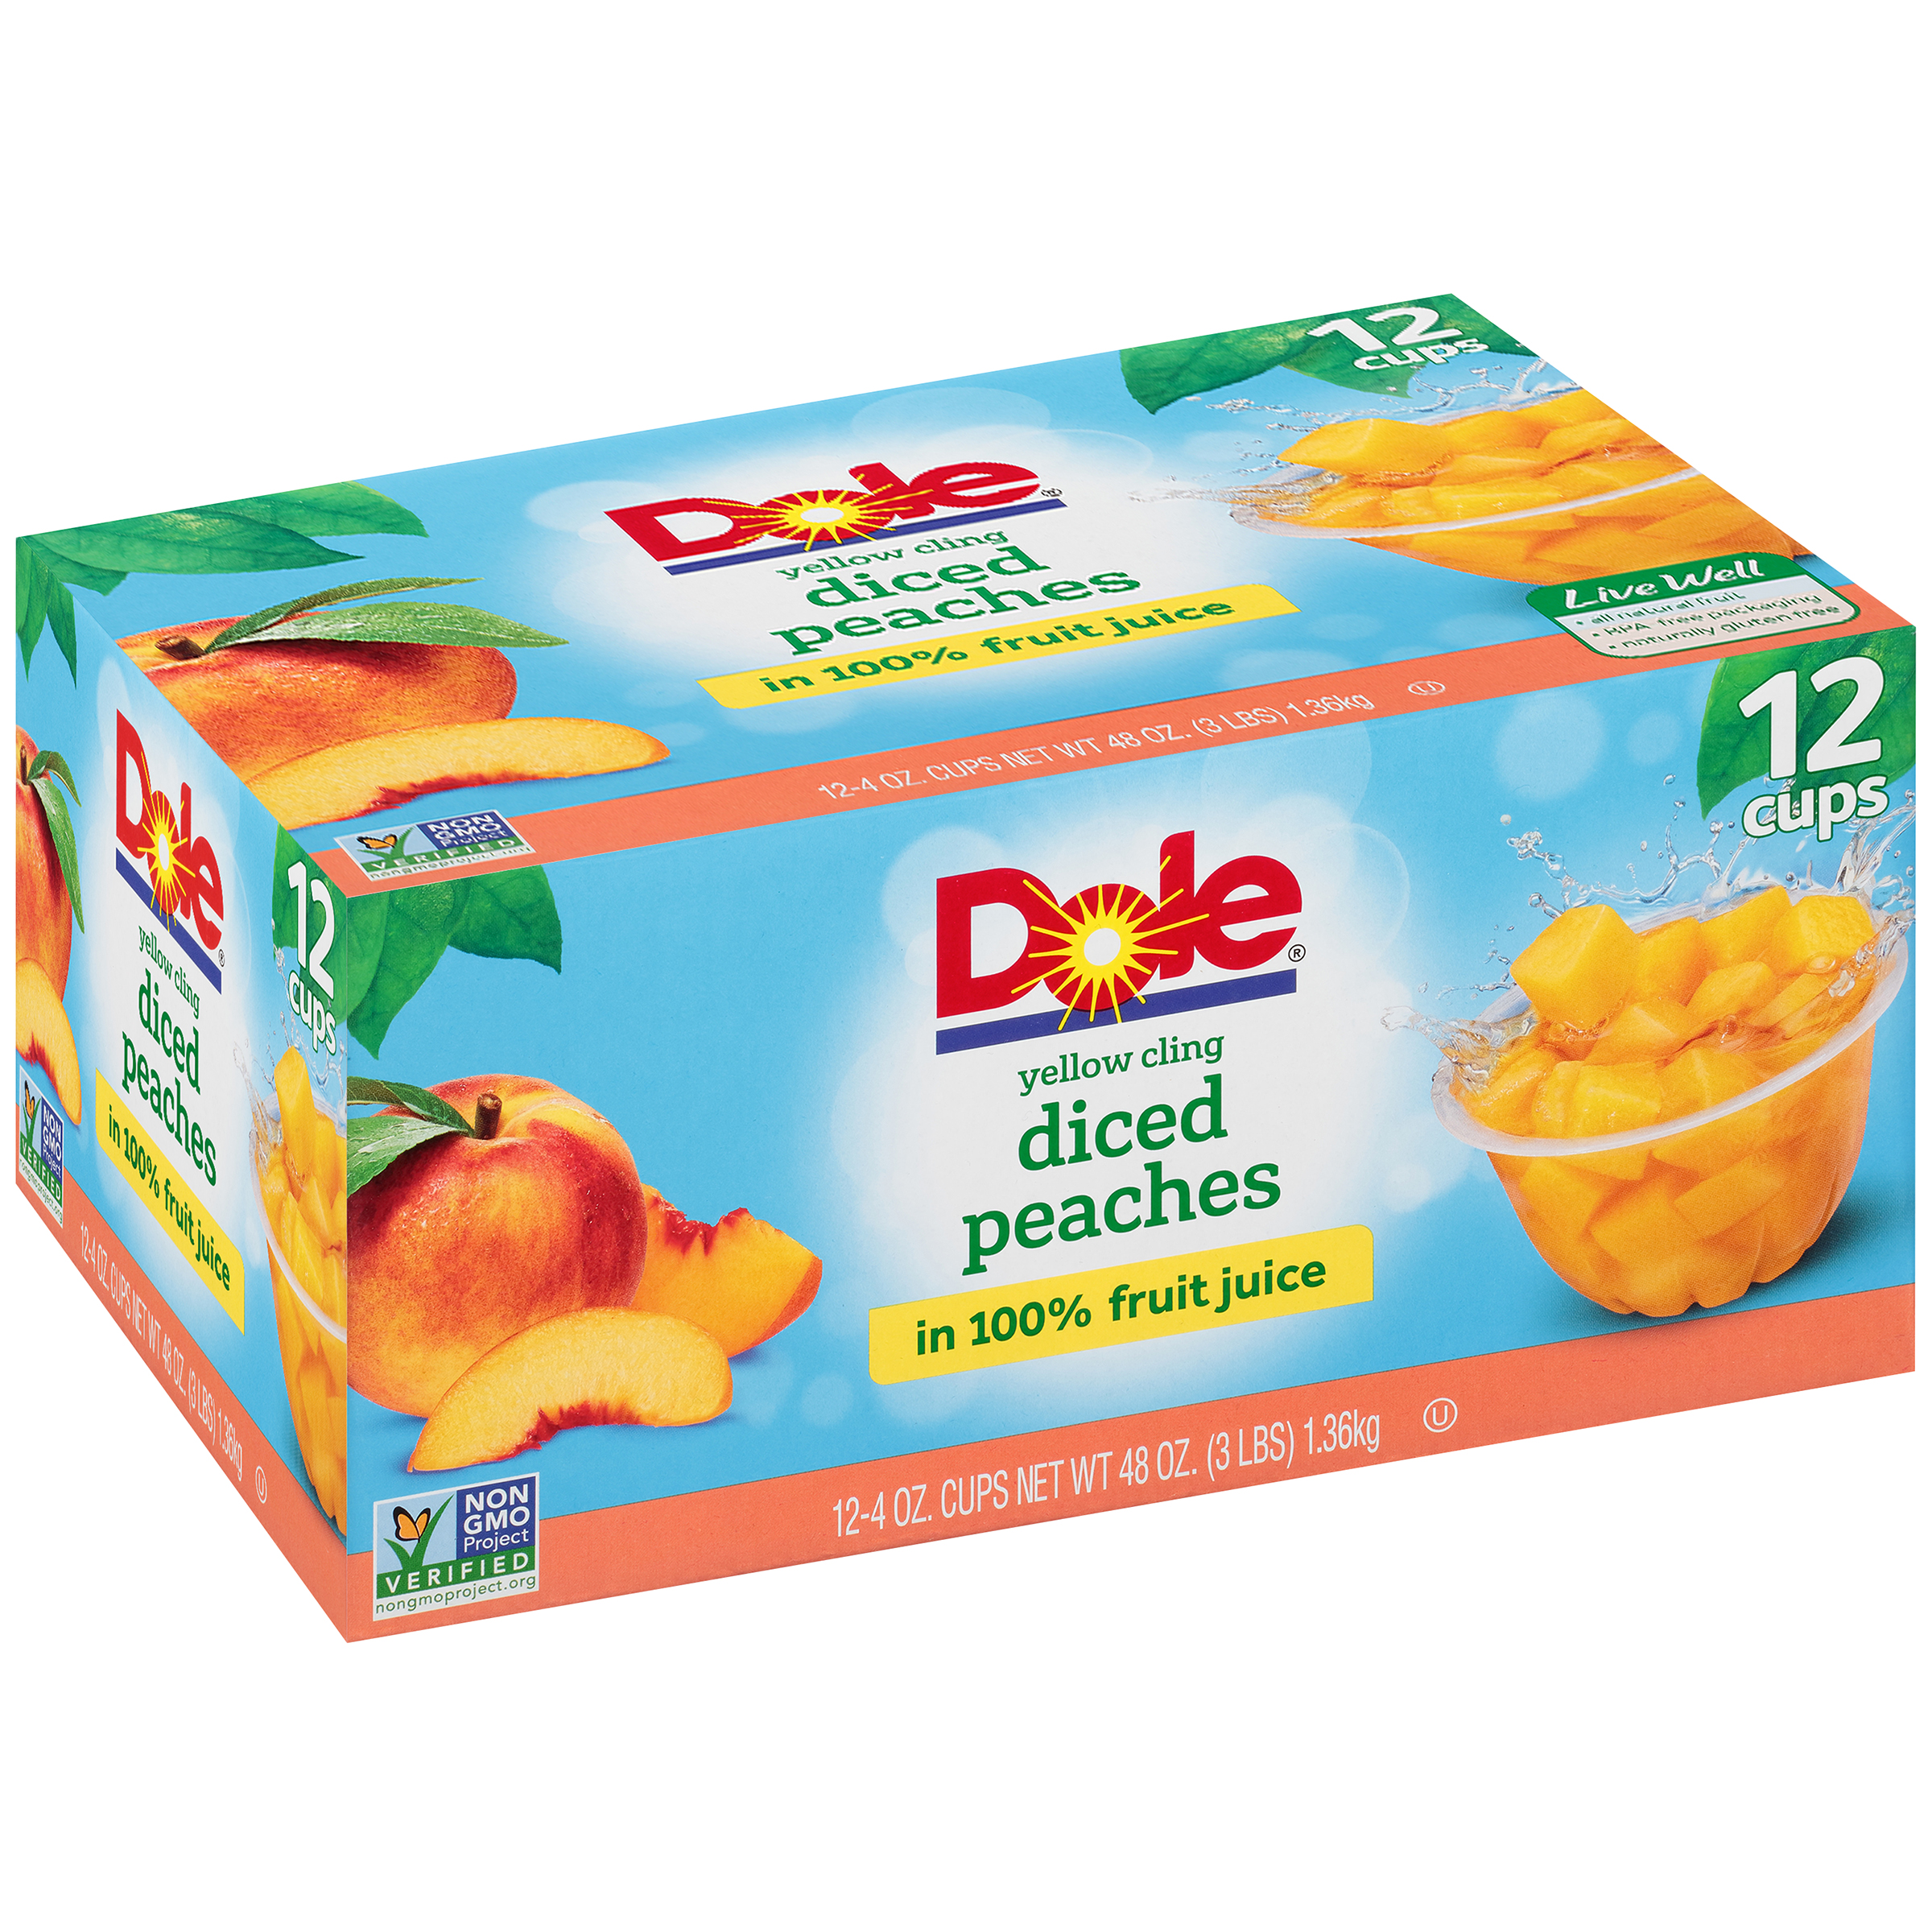 Dole Fruit Bowls Yellow Cling Diced